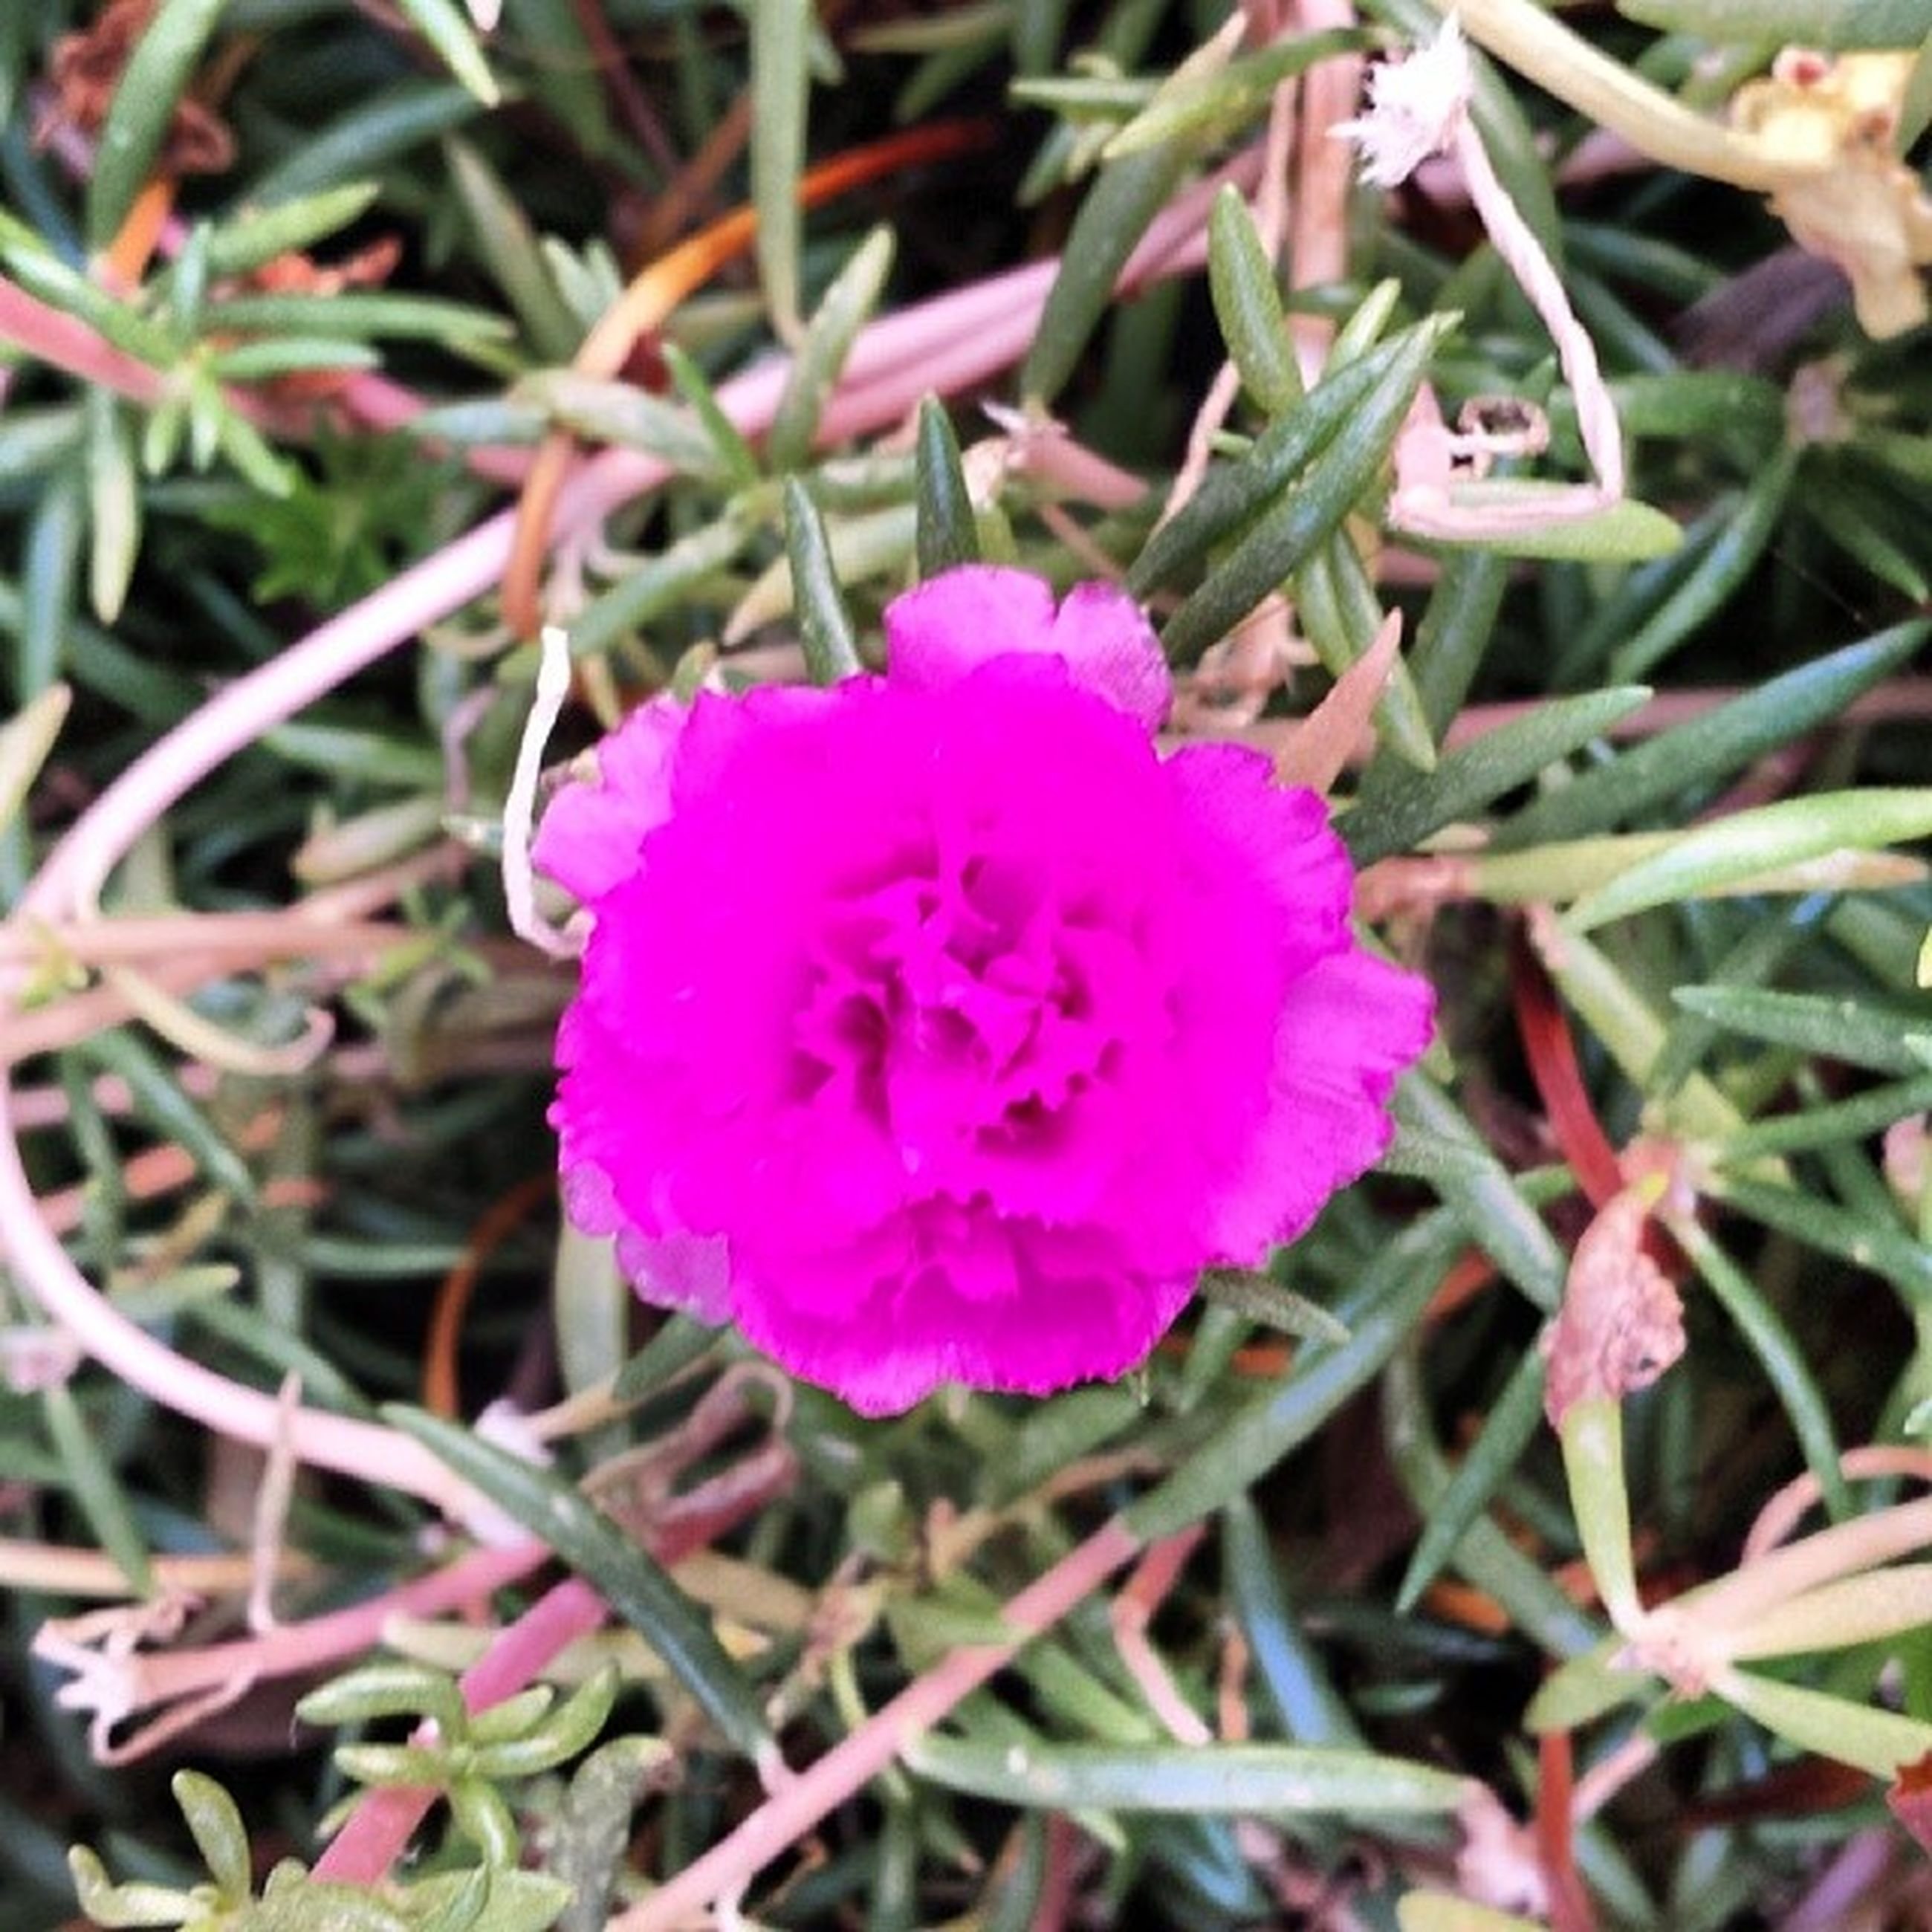 flower, freshness, fragility, growth, petal, pink color, flower head, beauty in nature, close-up, blooming, nature, focus on foreground, plant, purple, in bloom, pink, high angle view, outdoors, day, botany